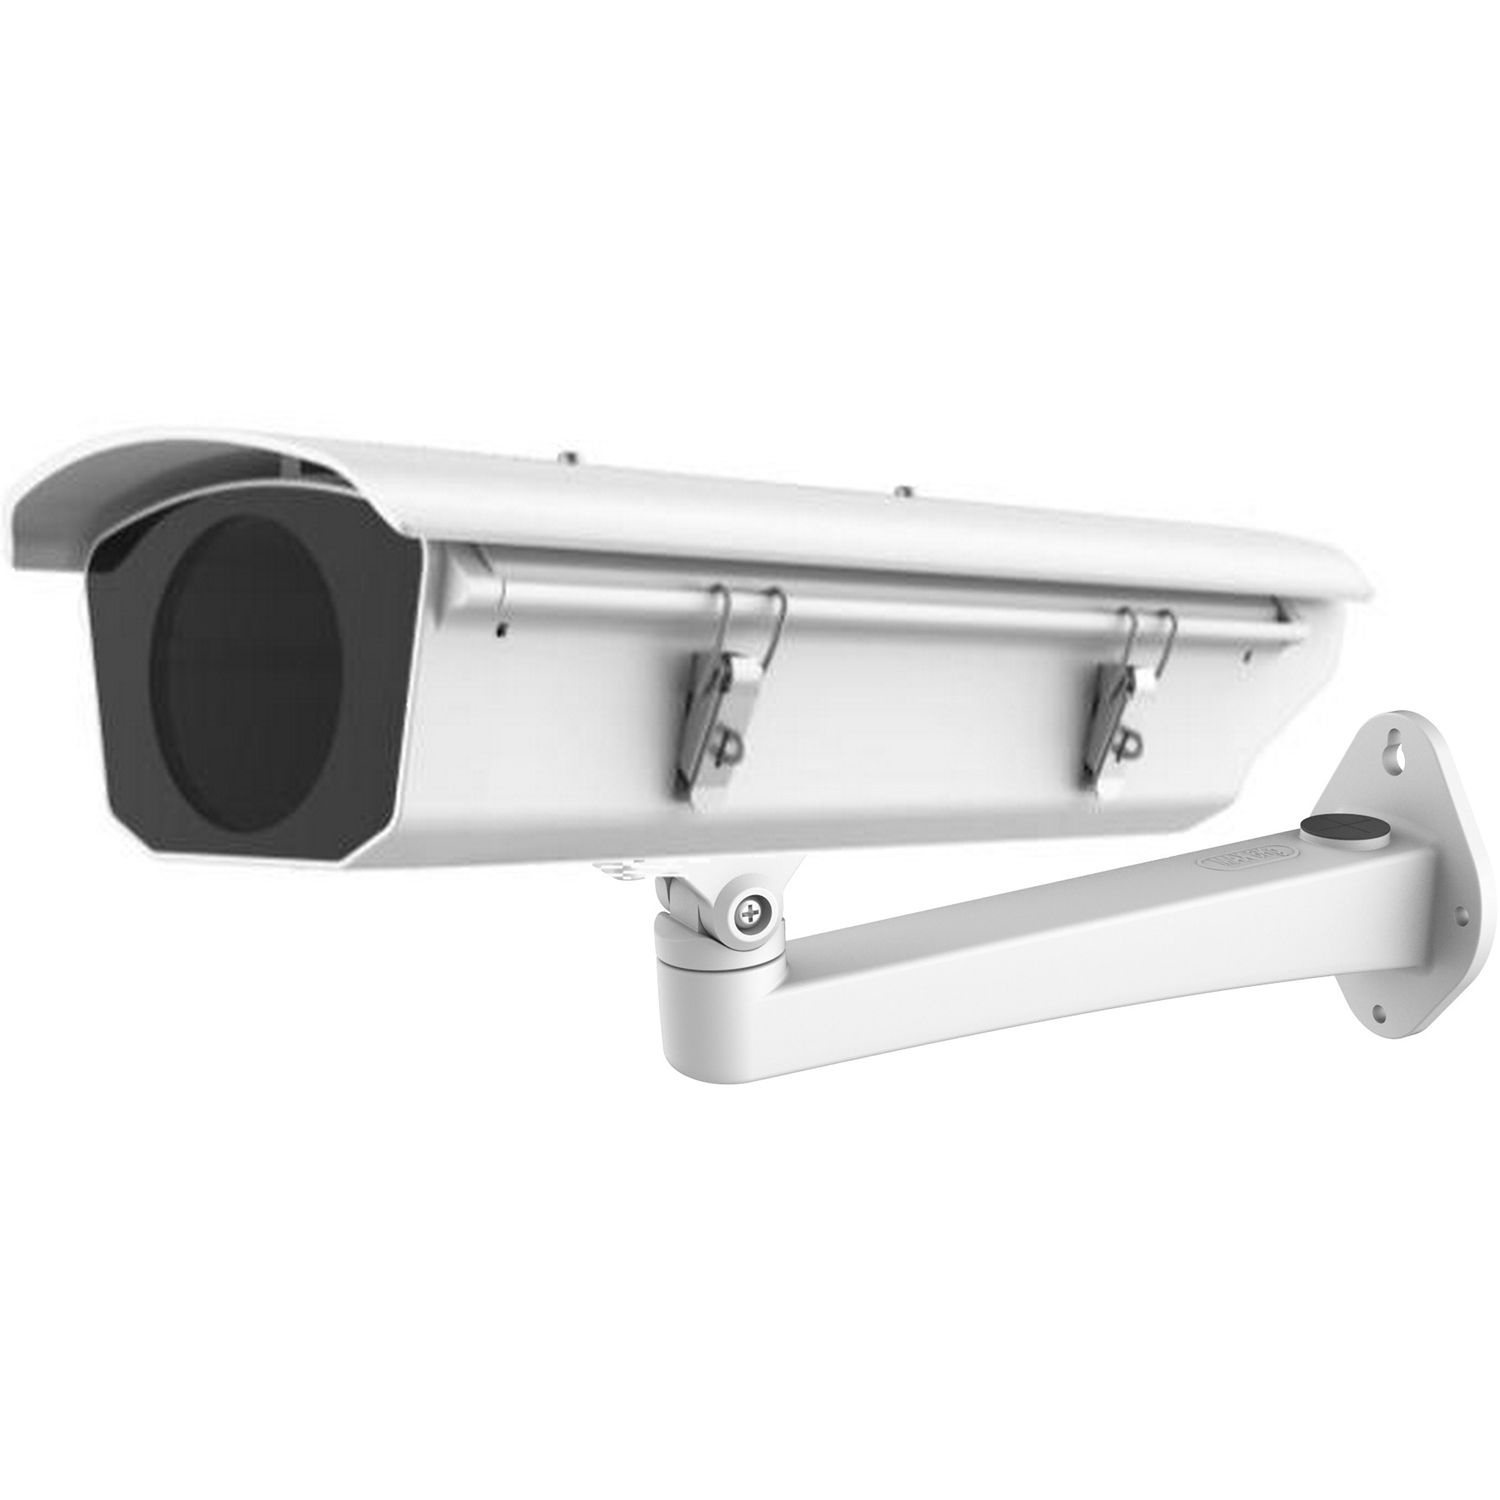 Hikvision Chb Hb Camera Box Ip66 Housing With Heater Bh Card Holder Name Holders 6215 Fan And Wall Bracket